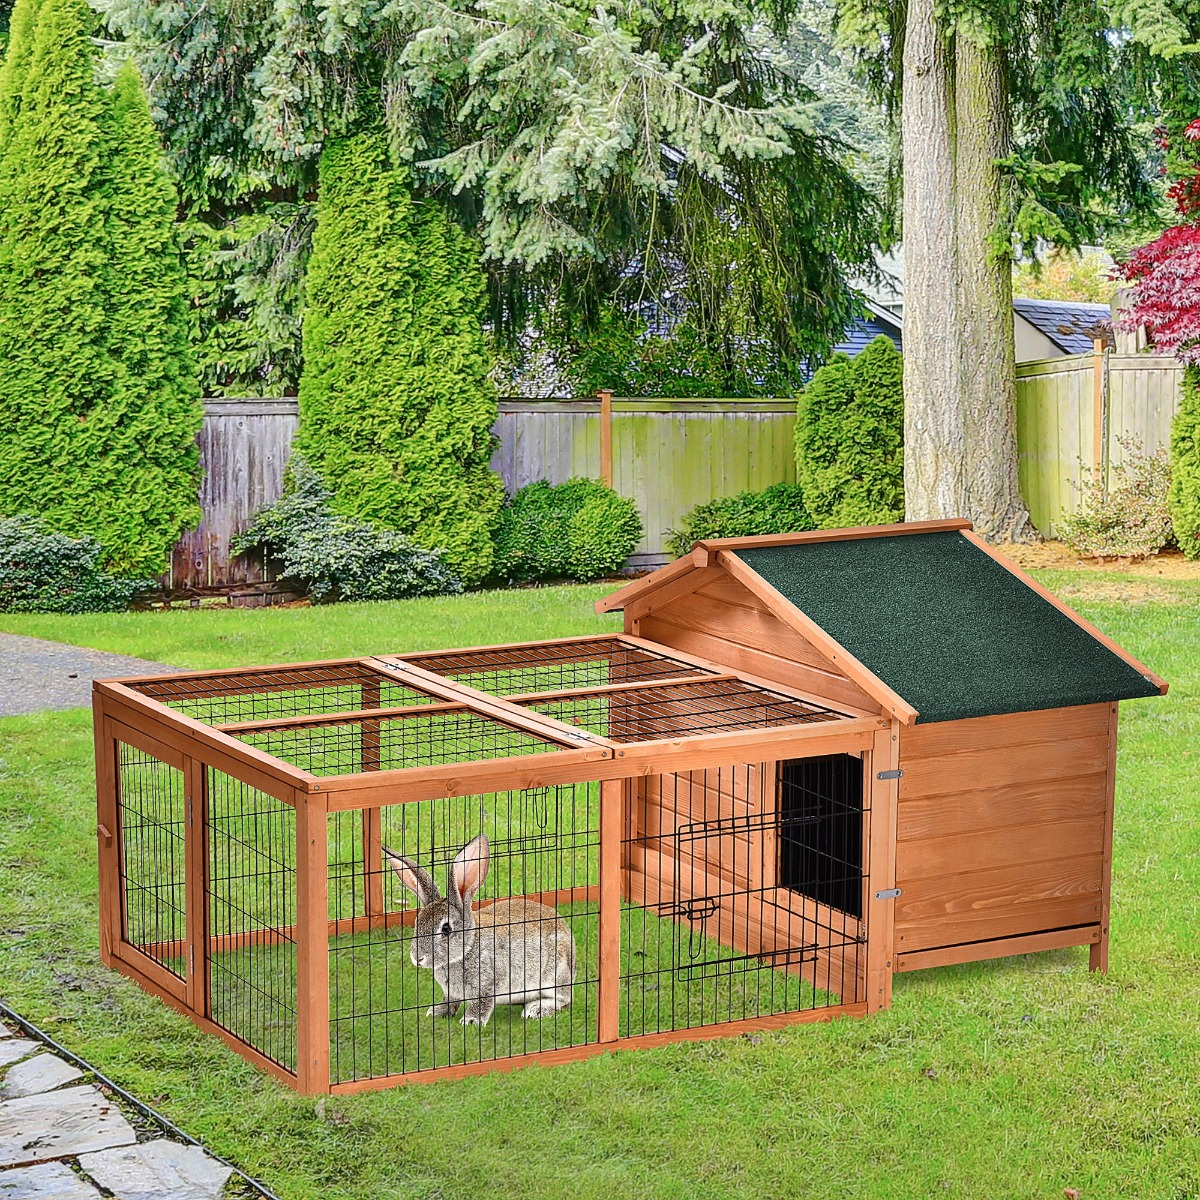 PawHut Wooden Rabbit Hutch Detachable Pet House with Openable Run & Roof Slide-out Tray